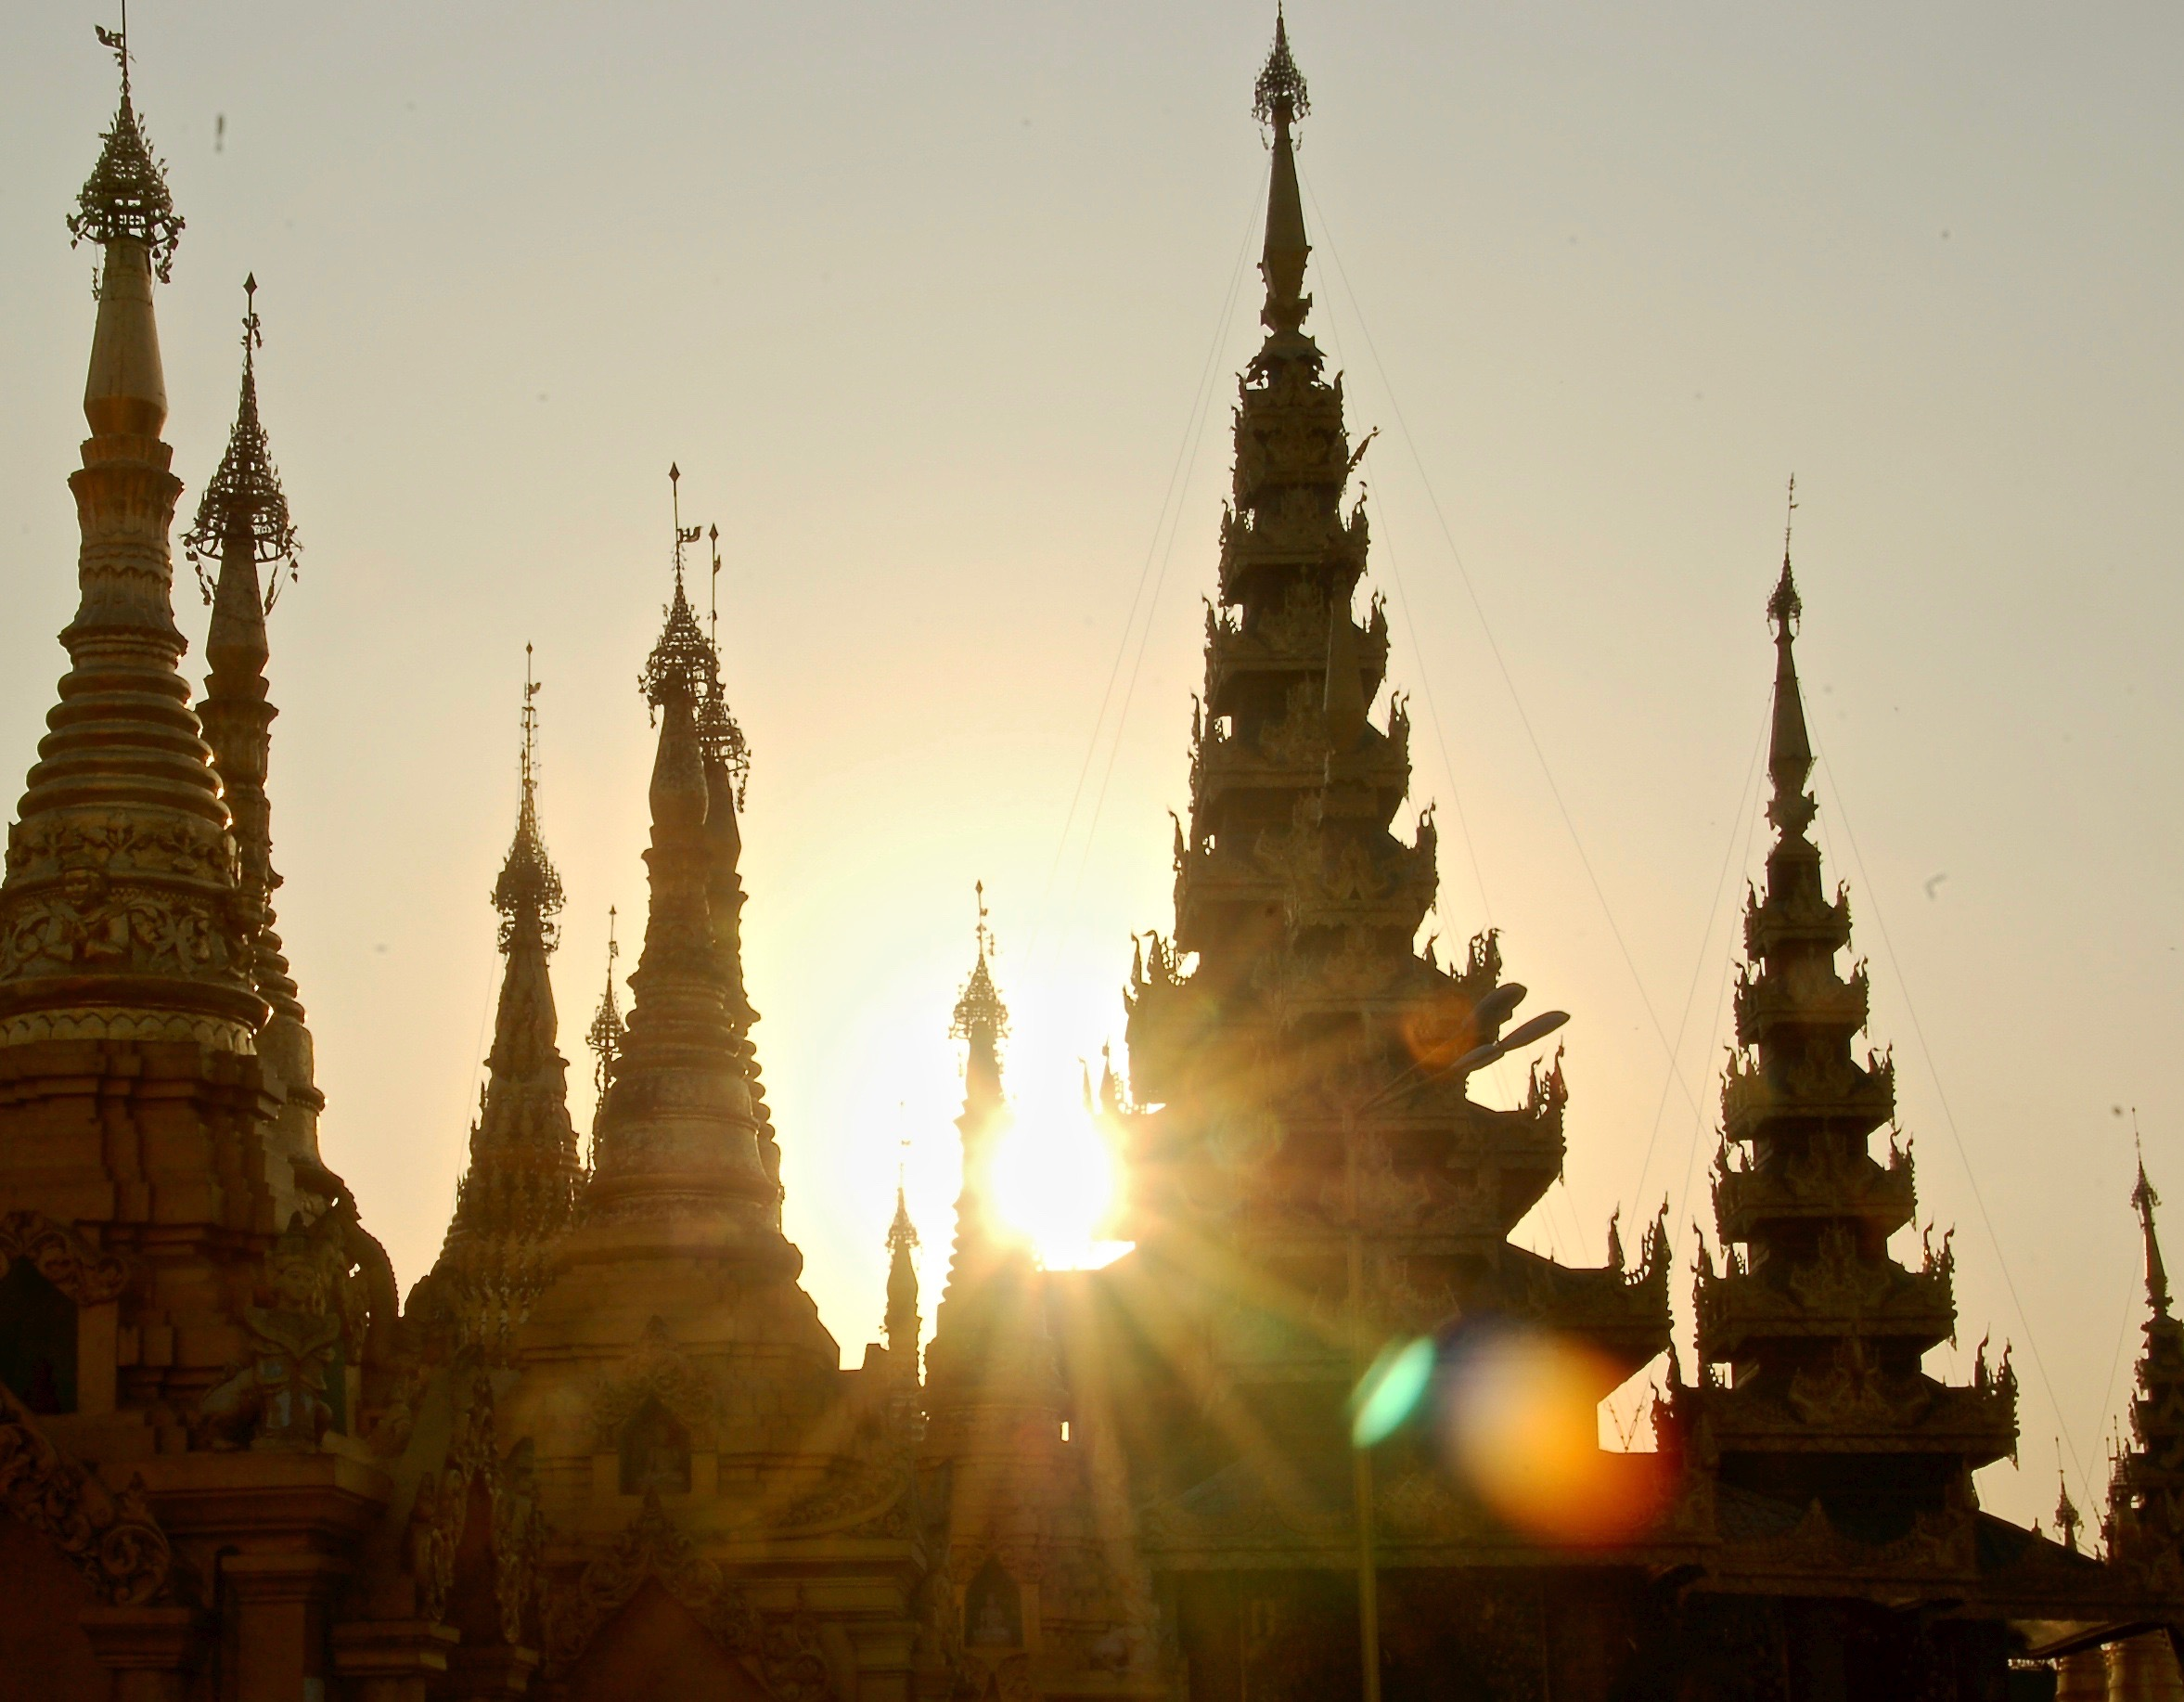 Sunset at the Shwedagon Pagoda in Yangon, Myanmar.